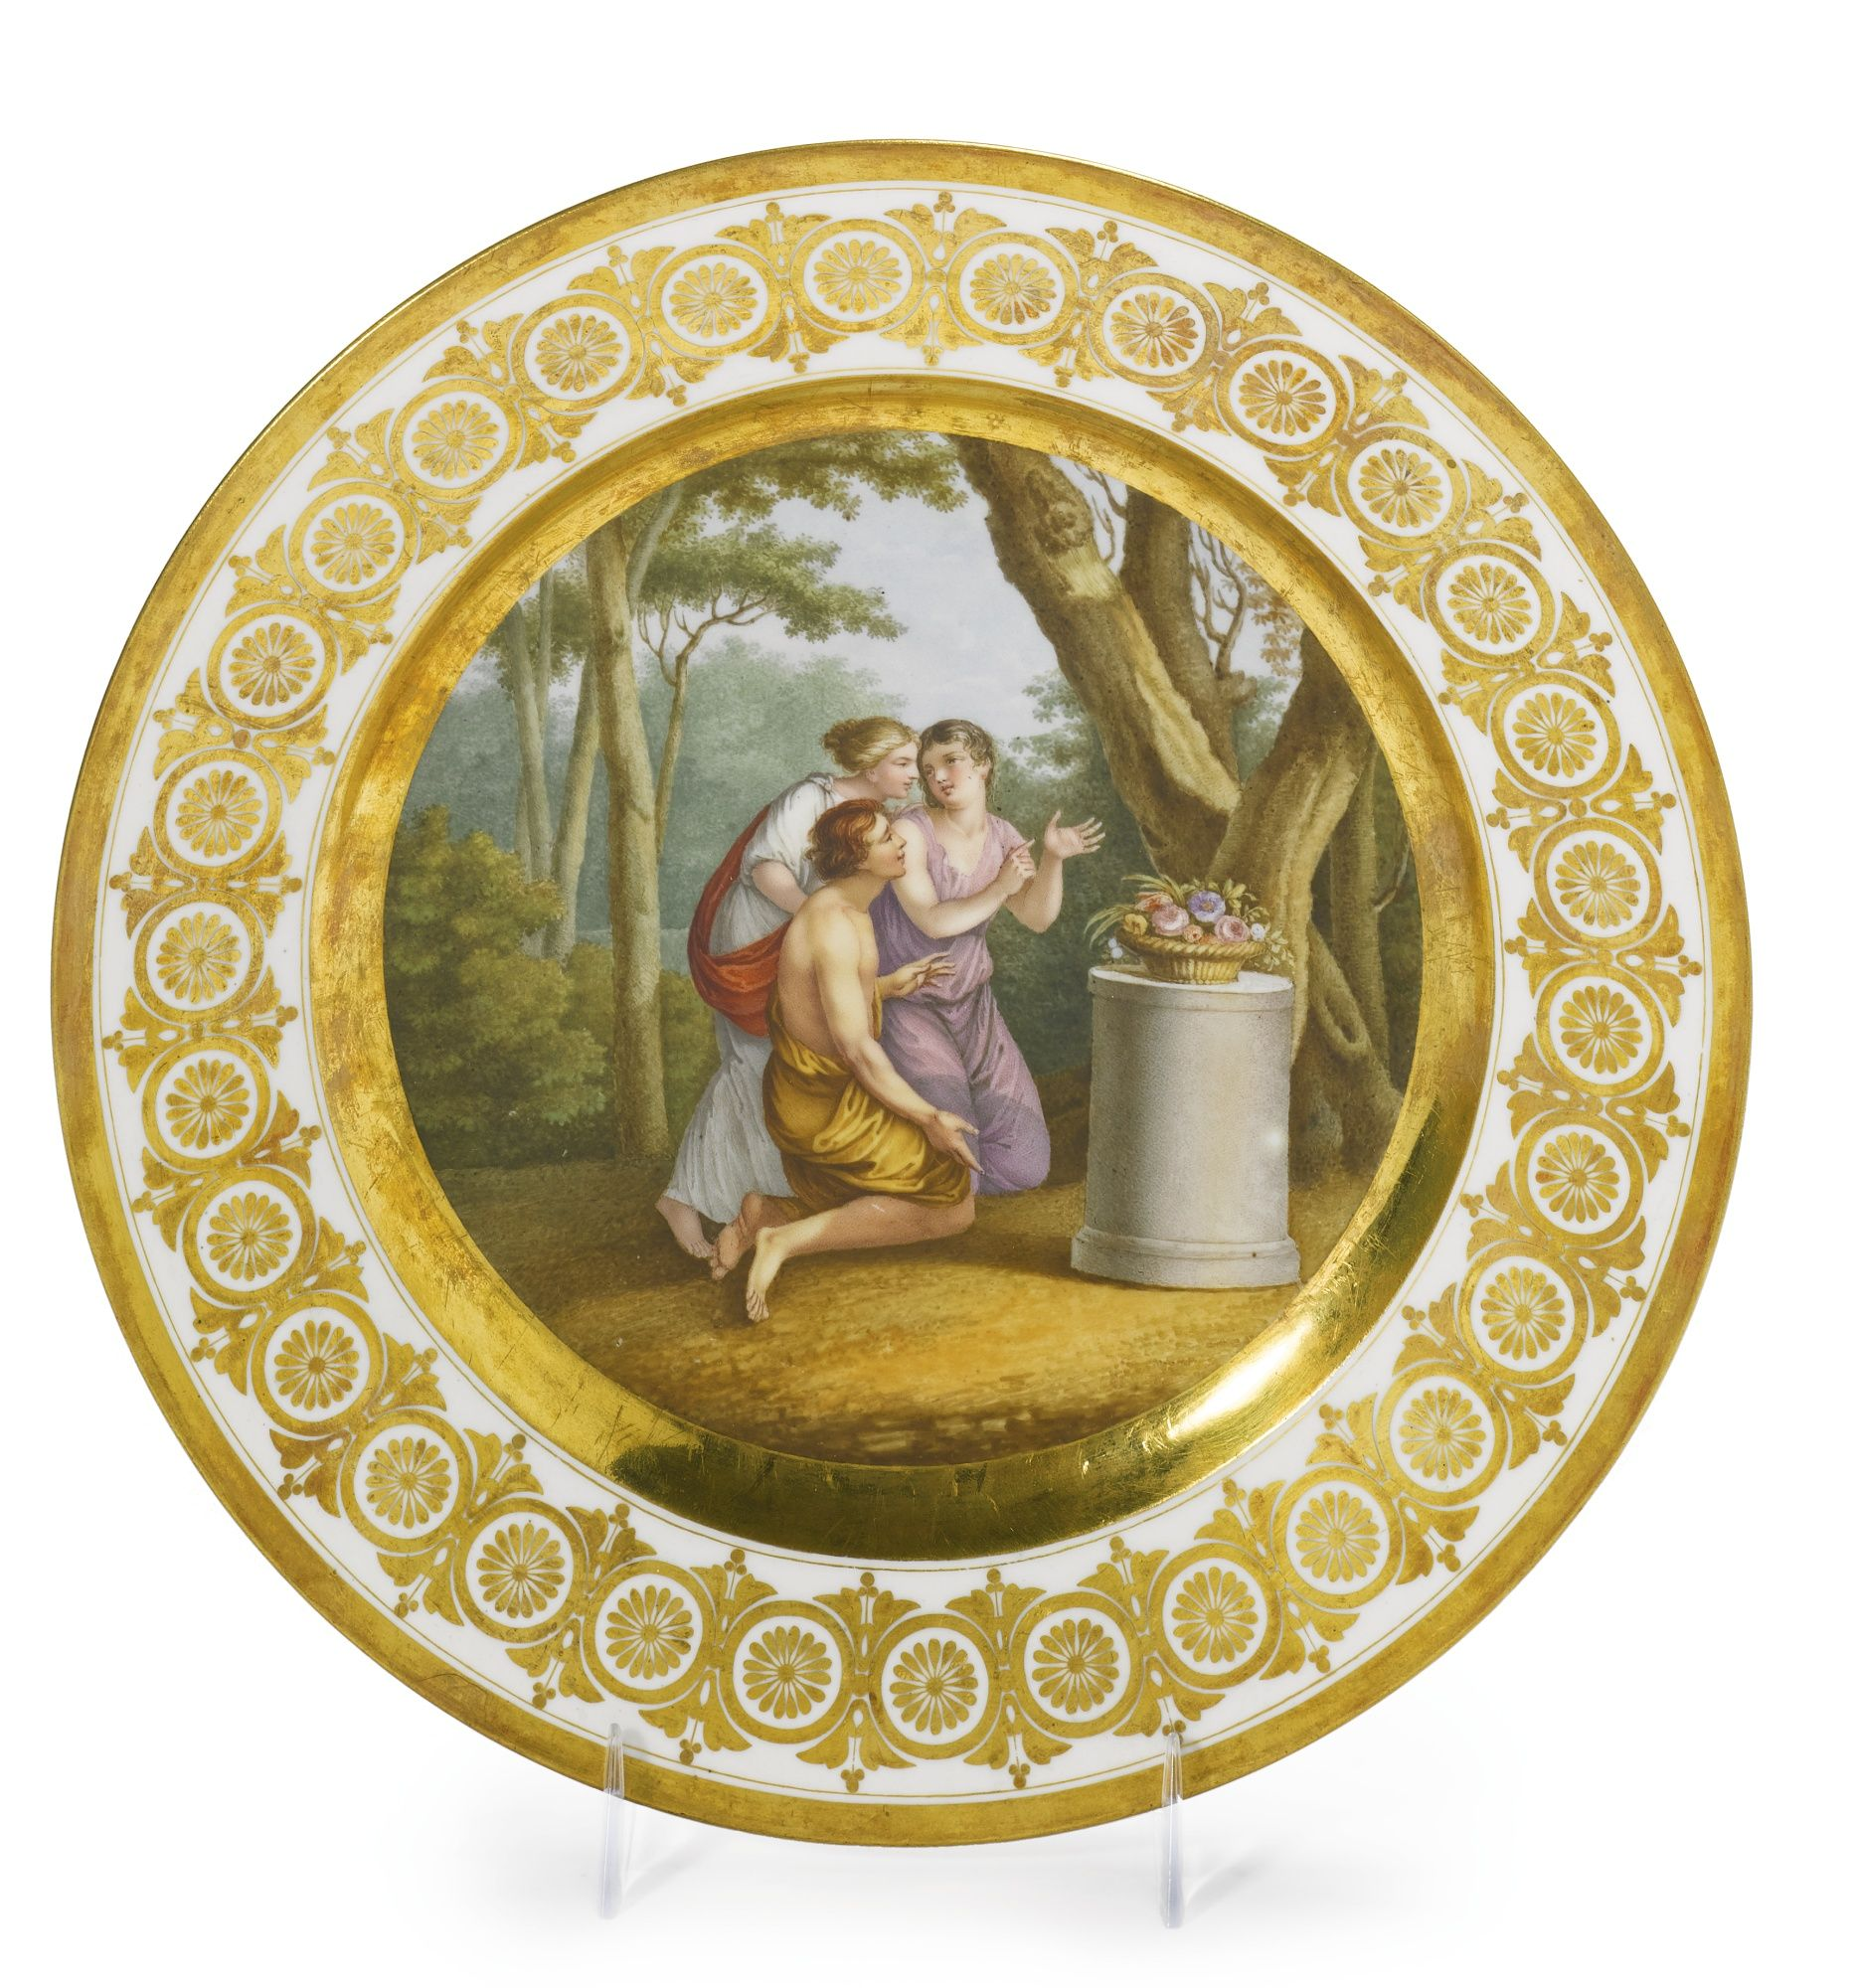 A Russian porcelain dessert plate, Imperial Porcelain Manufactory, St. Petersburg, Period of Alexander I (1801-1825)